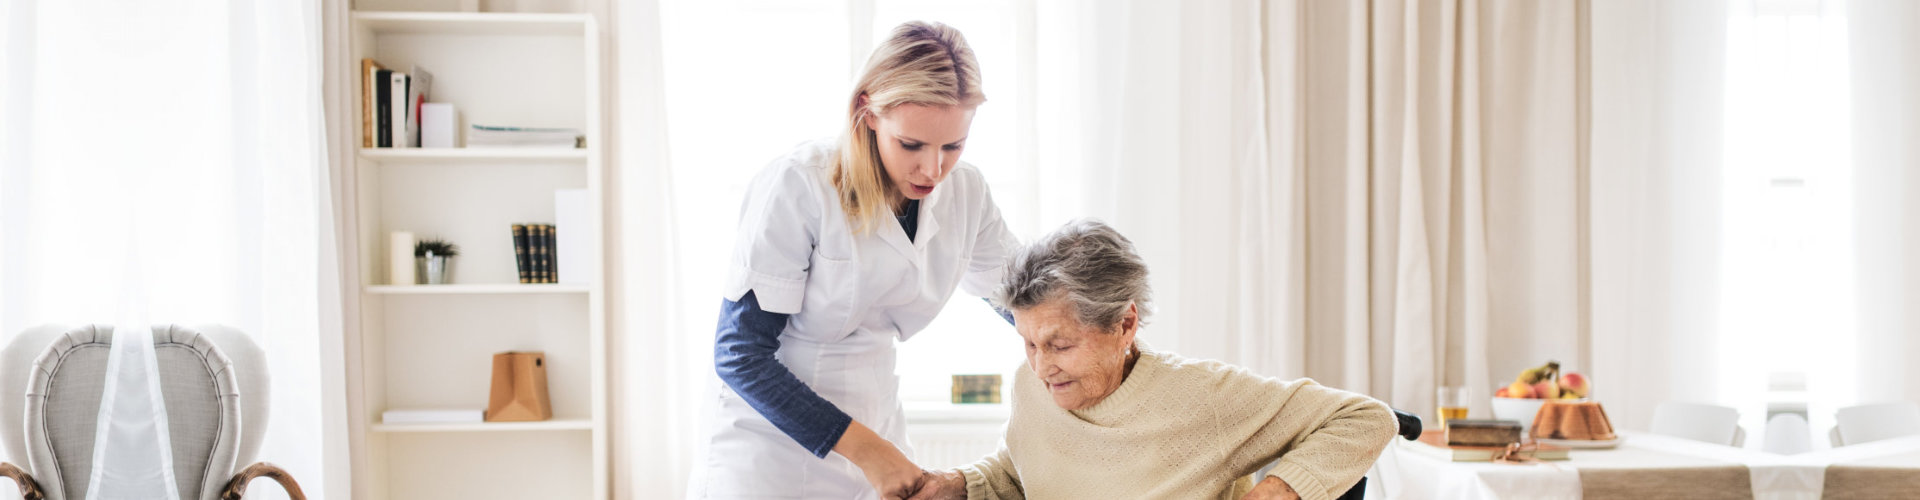 caregiver assisting the old lady